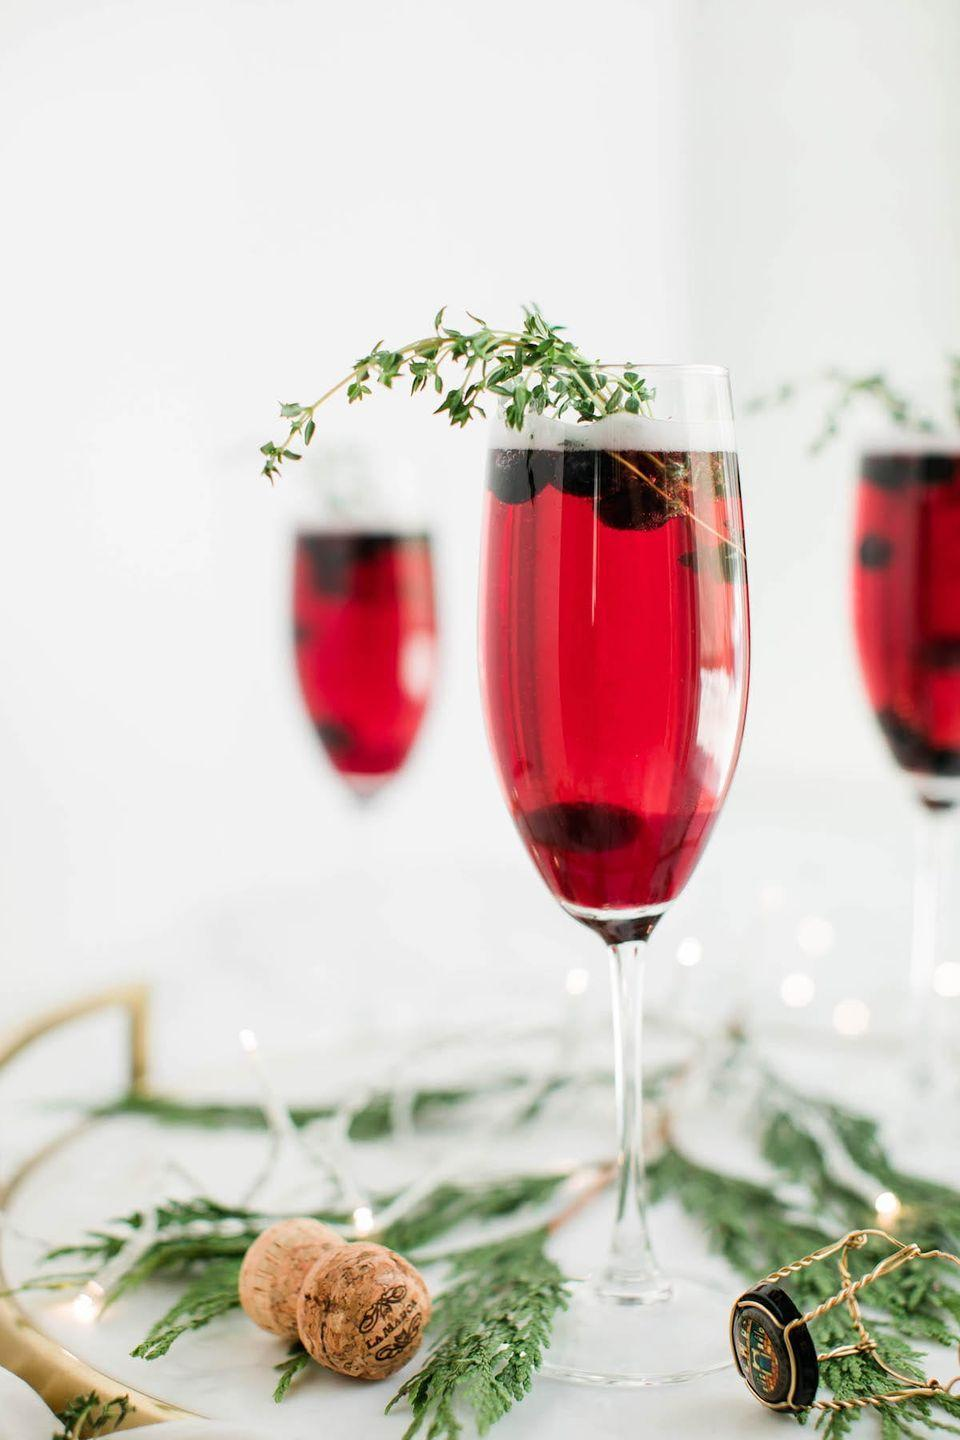 """<p>Blueberries lend these gorgeous cocktails their lovely deep hue, as well as some flavor.</p><p><strong>Get the recipe at <a href=""""https://thesweetestoccasion.com/2018/12/blueberry-sparkler-champagne-cocktail/"""" rel=""""nofollow noopener"""" target=""""_blank"""" data-ylk=""""slk:The Sweetest Occasion"""" class=""""link rapid-noclick-resp"""">The Sweetest Occasion</a>.</strong></p><p><strong><a class=""""link rapid-noclick-resp"""" href=""""https://www.amazon.com/Lenox-845276-Tuscany-Classics-Champagne/dp/B00FYH8V6O/ref=sr_1_1_sspa?tag=syn-yahoo-20&ascsubtag=%5Bartid%7C10050.g.30433150%5Bsrc%7Cyahoo-us"""" rel=""""nofollow noopener"""" target=""""_blank"""" data-ylk=""""slk:SHOP CHAMPAGNE FLUTES"""">SHOP CHAMPAGNE FLUTES</a><br></strong></p>"""